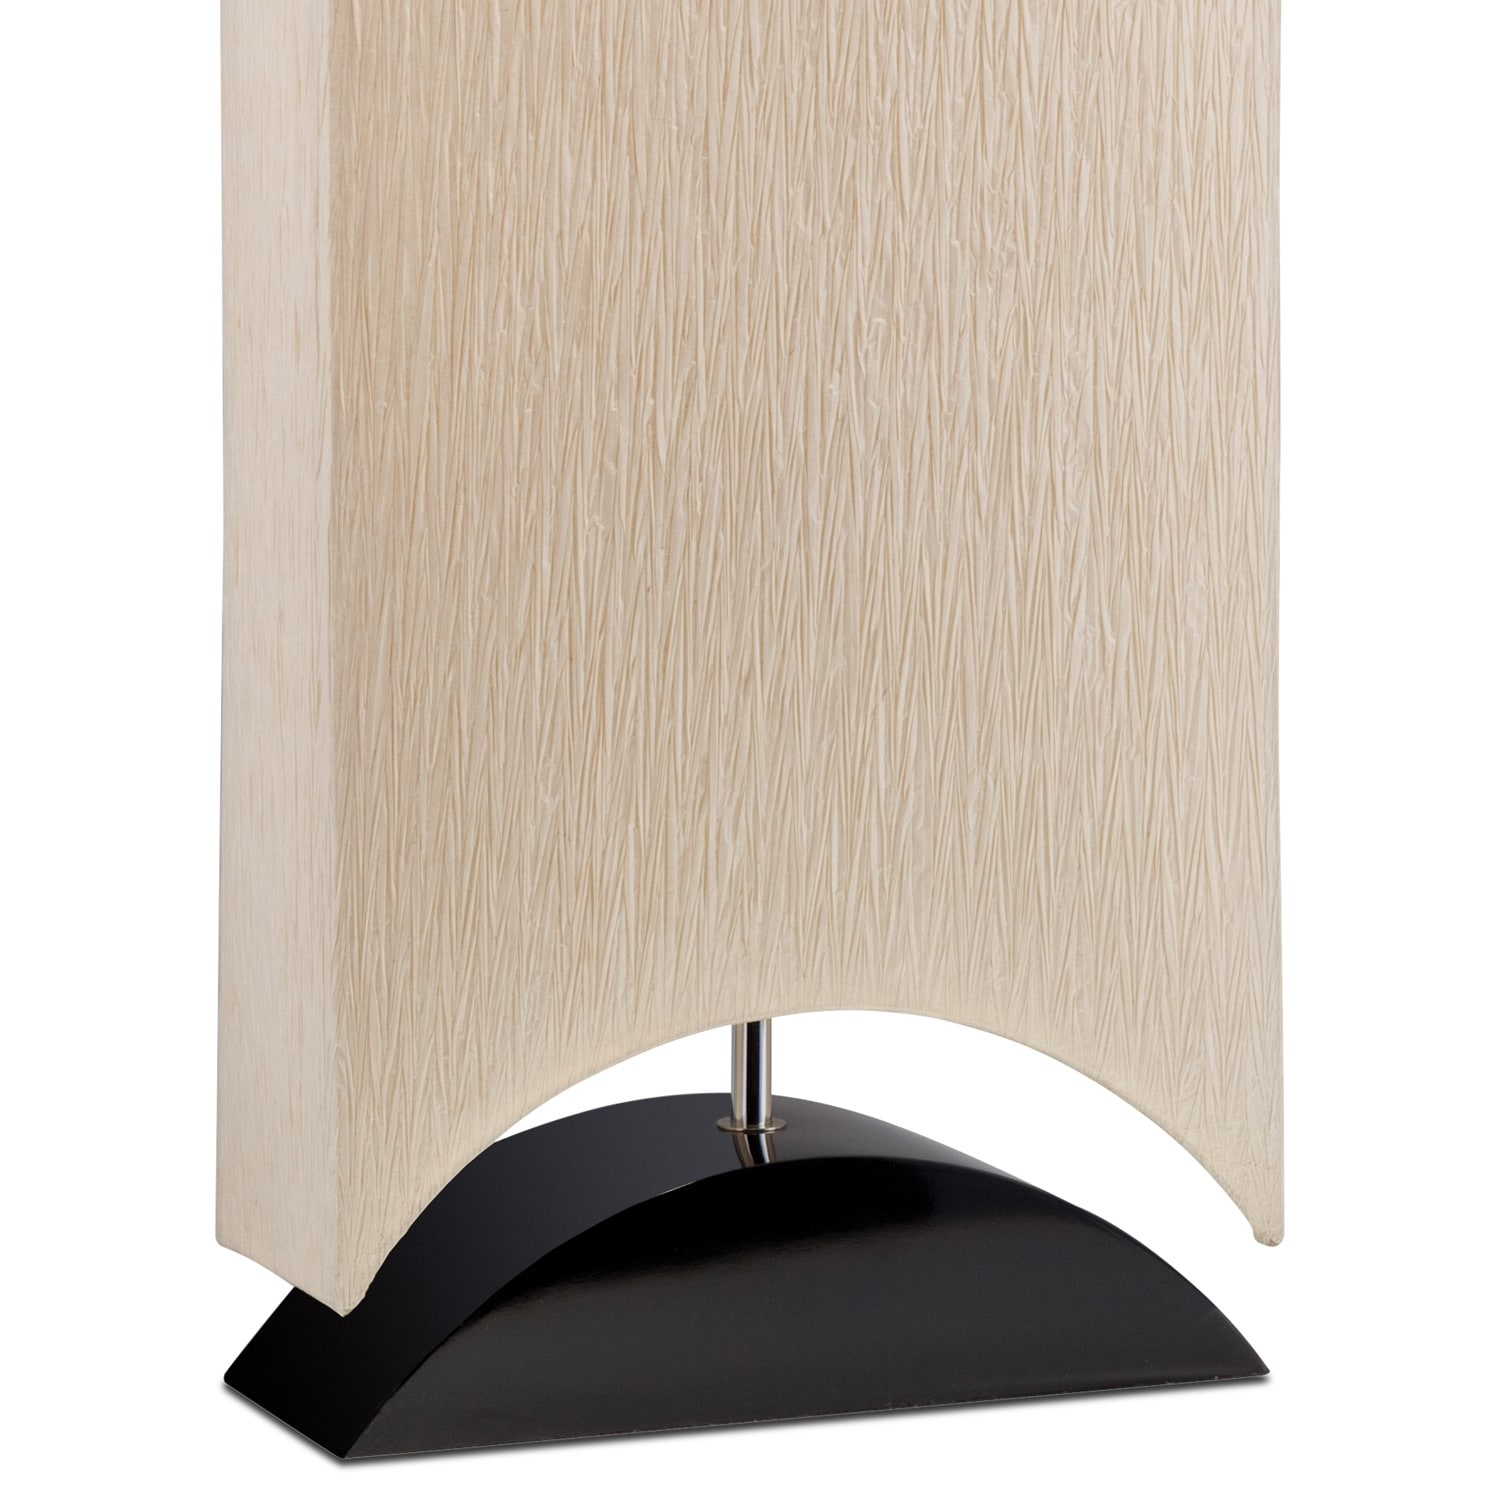 home accessories paper shade floor lamp. Black Bedroom Furniture Sets. Home Design Ideas